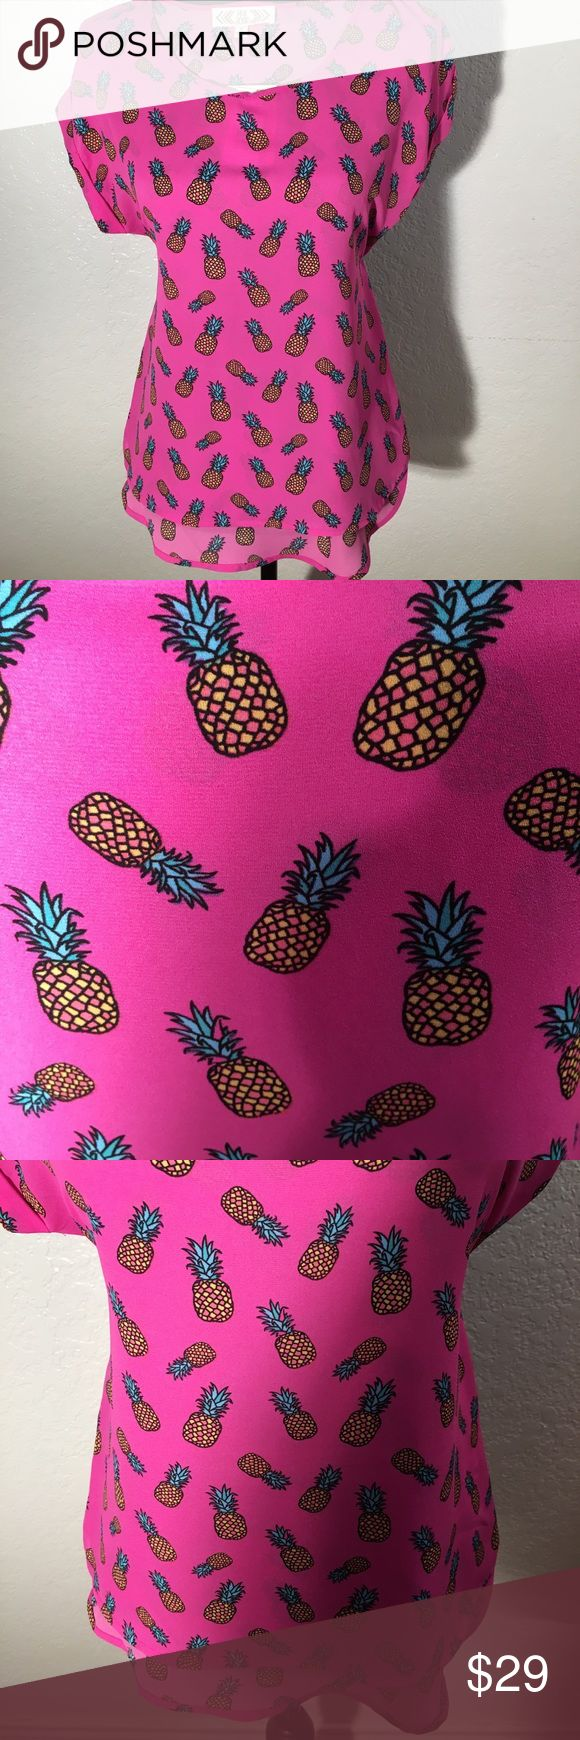 Pink Rose Pink Pineapple Top Pink Pineapple Top has Cap Sleeves and a curving Hem that is longer in the back than front. Fabric Content/ Care Instructions in Photos. Pink Rose Tops Blouses